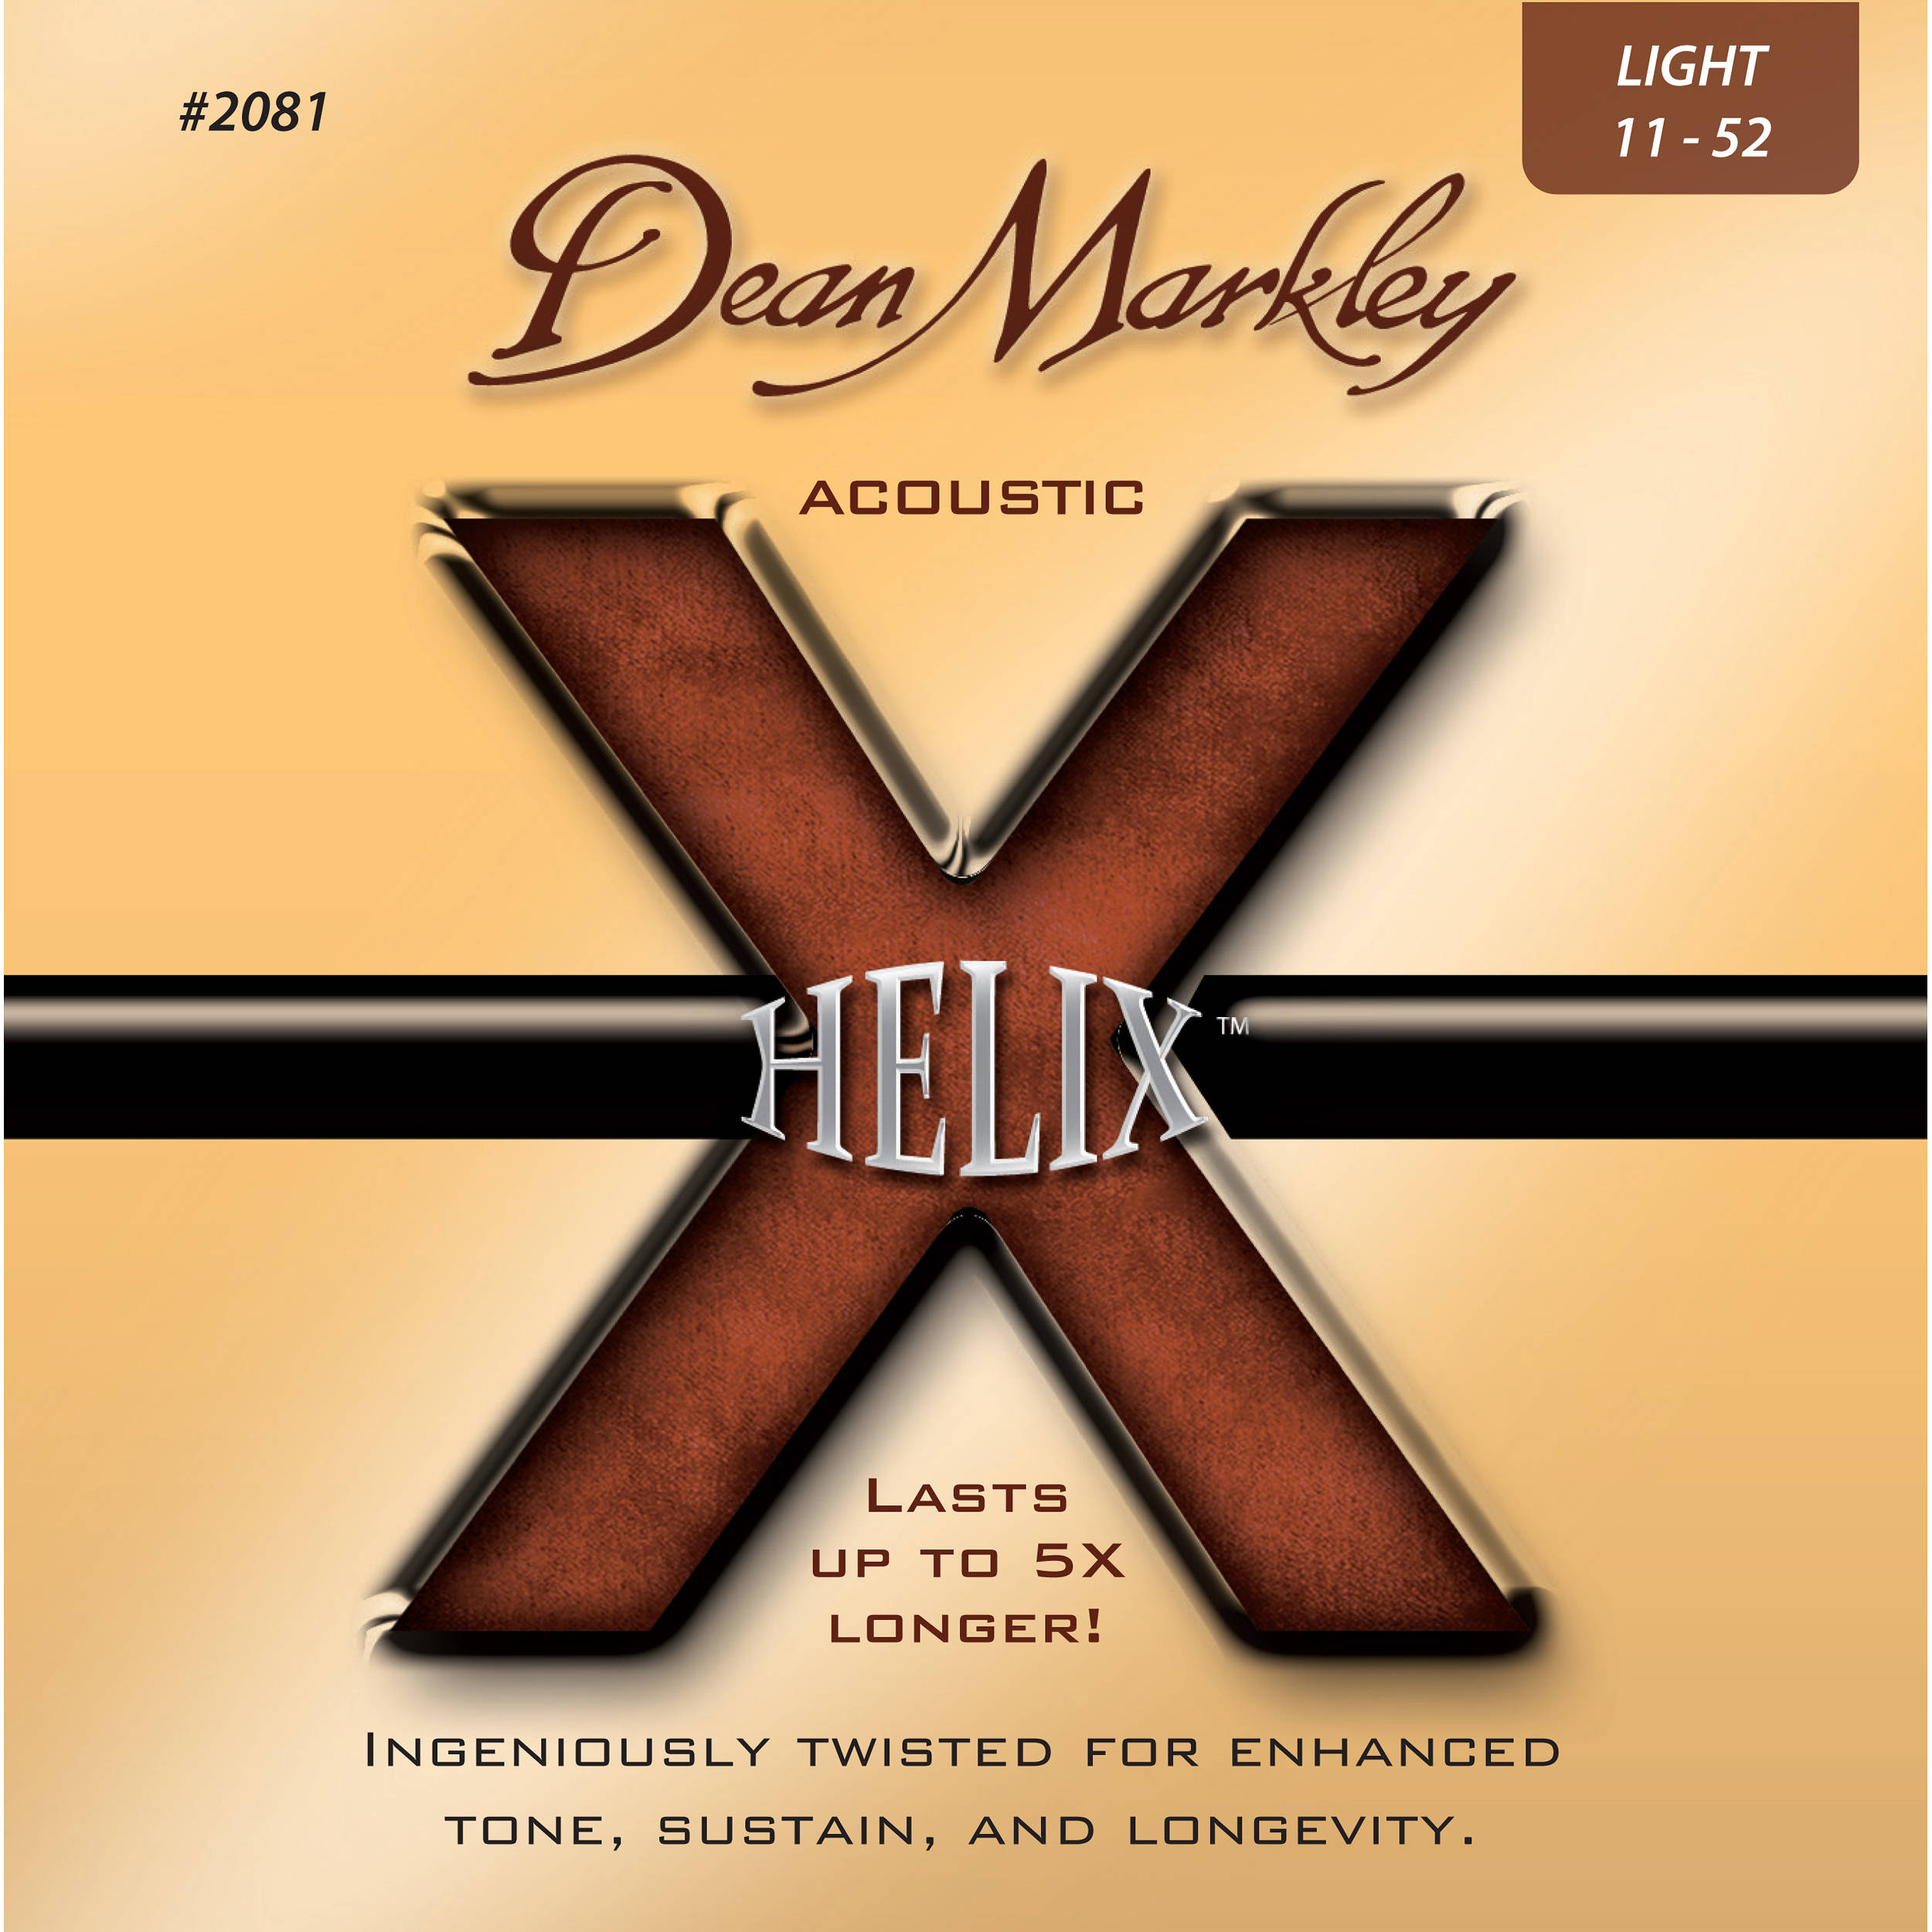 Dean Markley Helix 2081 11-52 Light Acoustic Strings